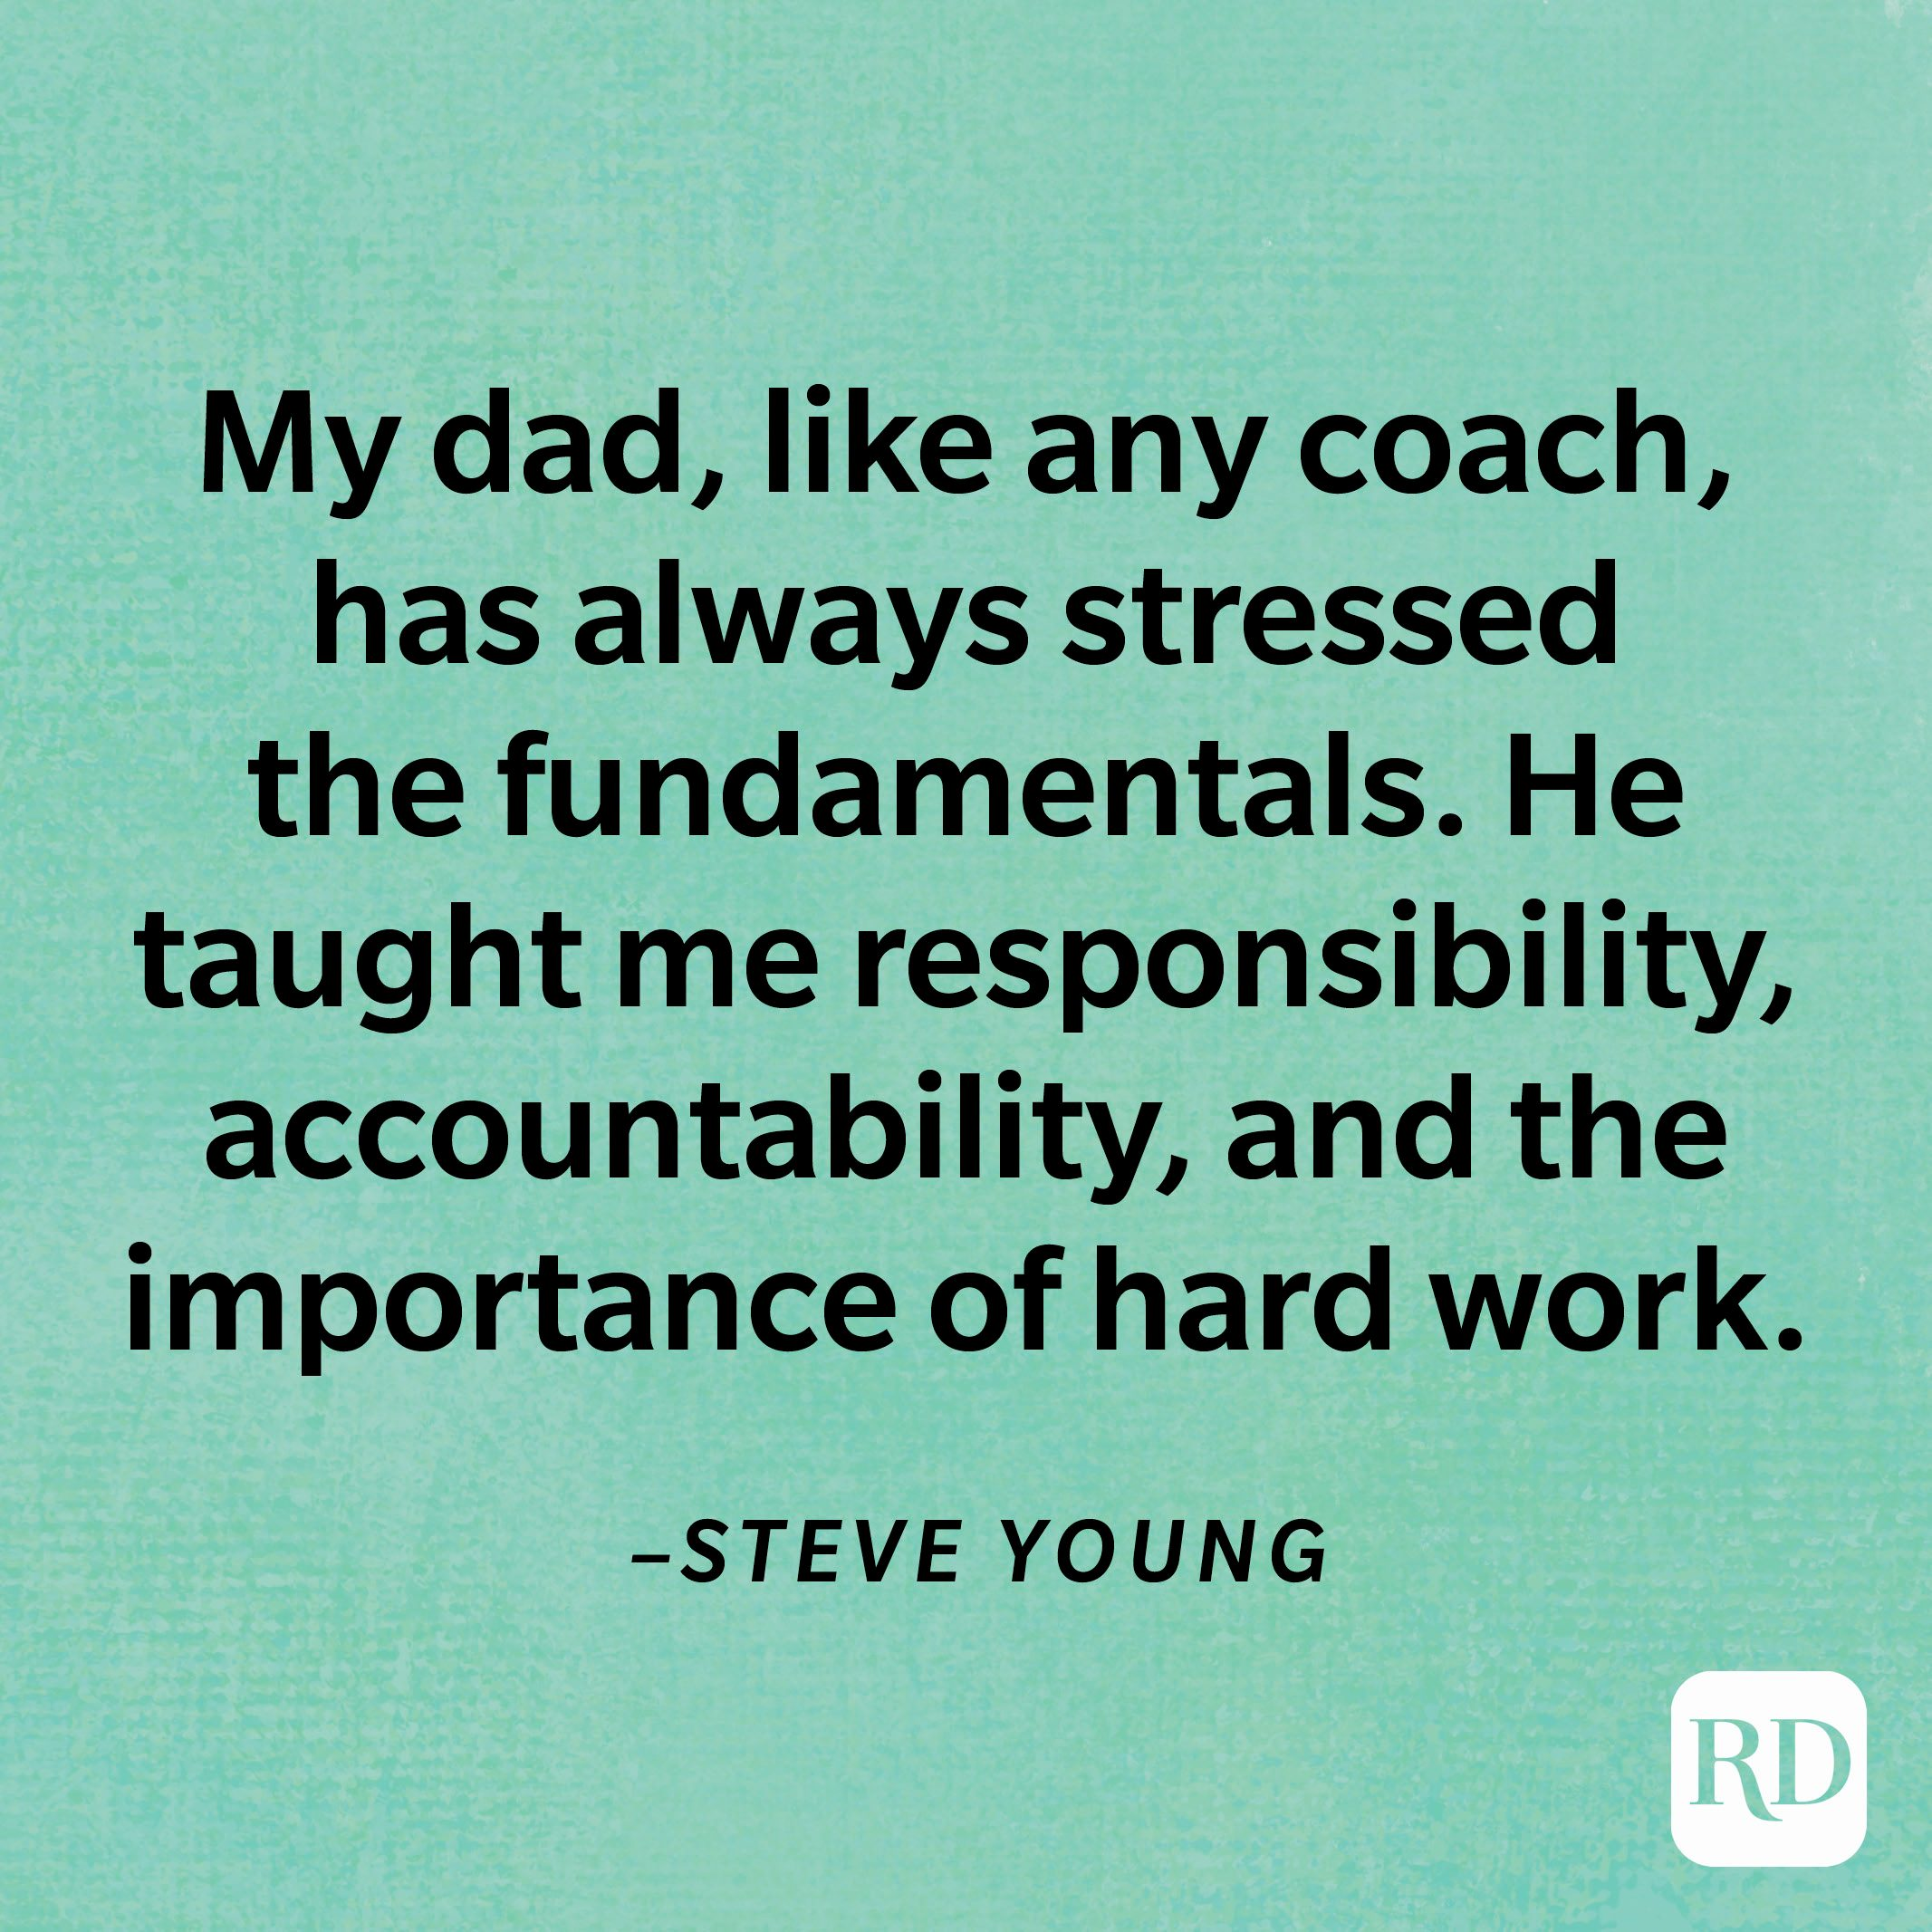 """""""My dad, like any coach, has always stressed the fundamentals. He taught me responsibility, accountability, and the importance of hard work.""""—Steve Young"""